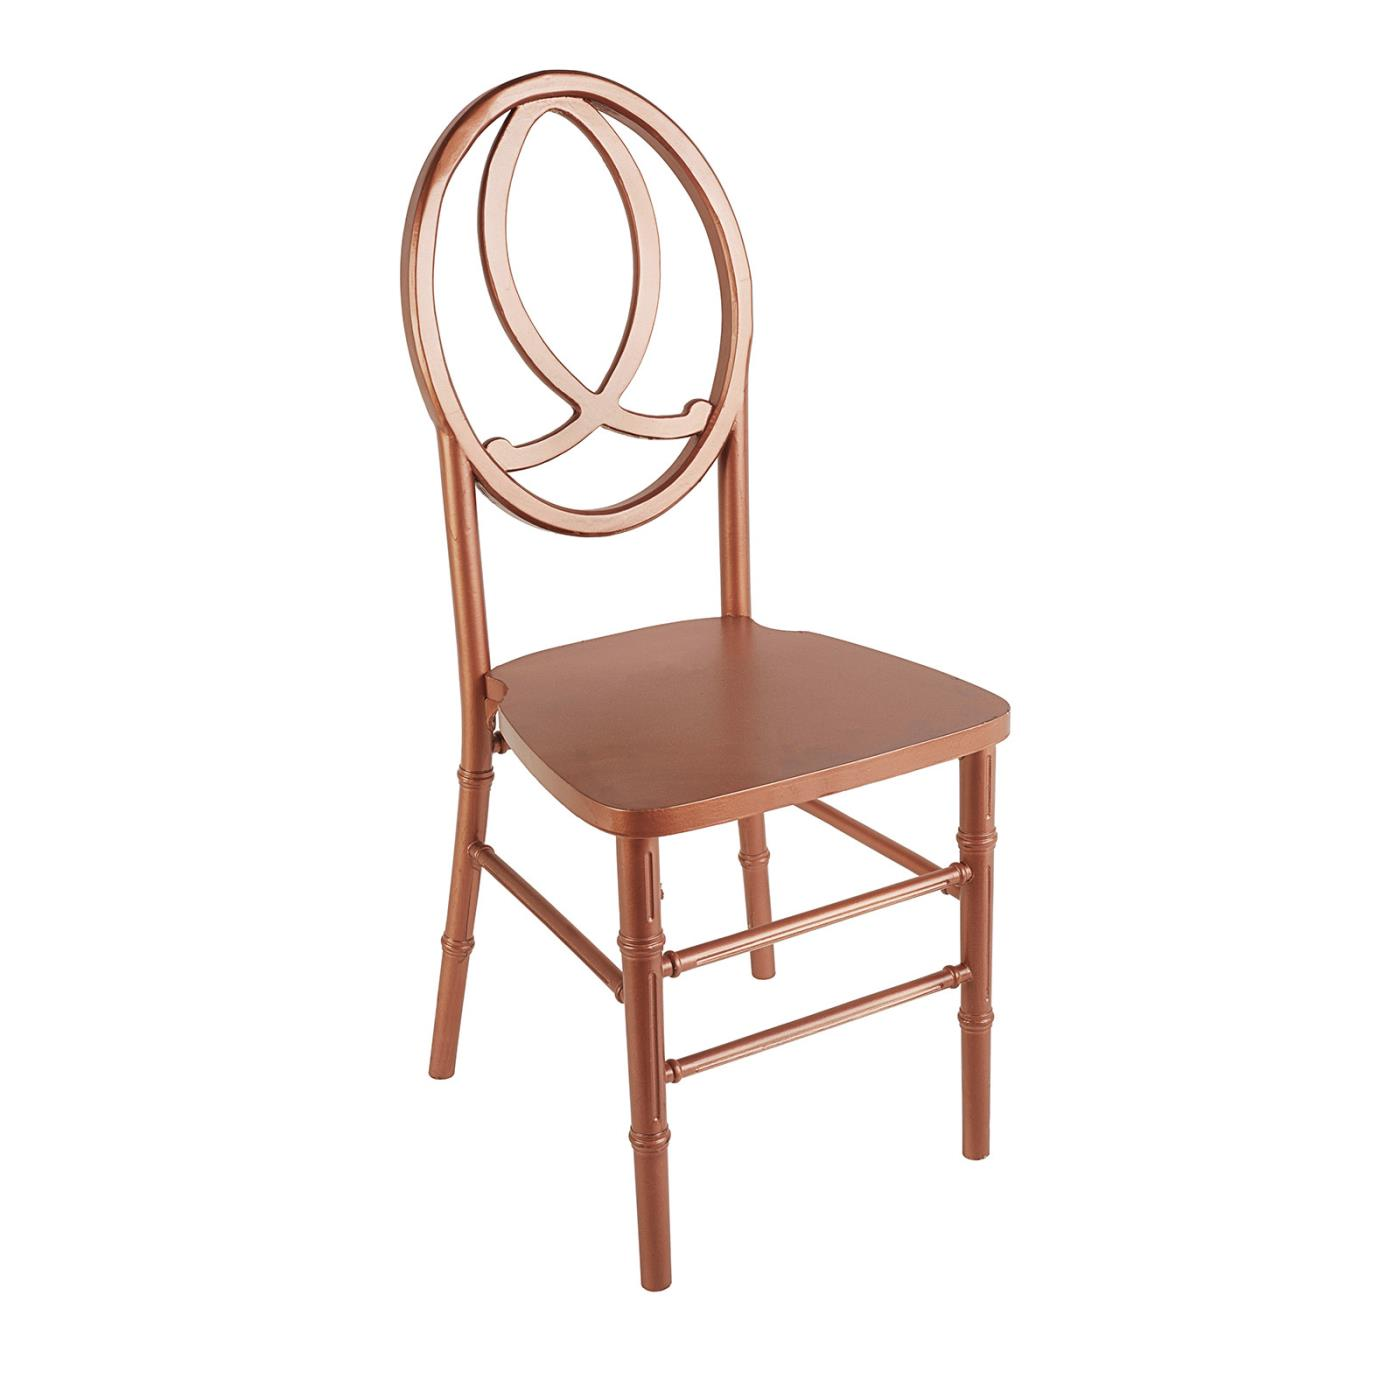 Omega Chair - Copper